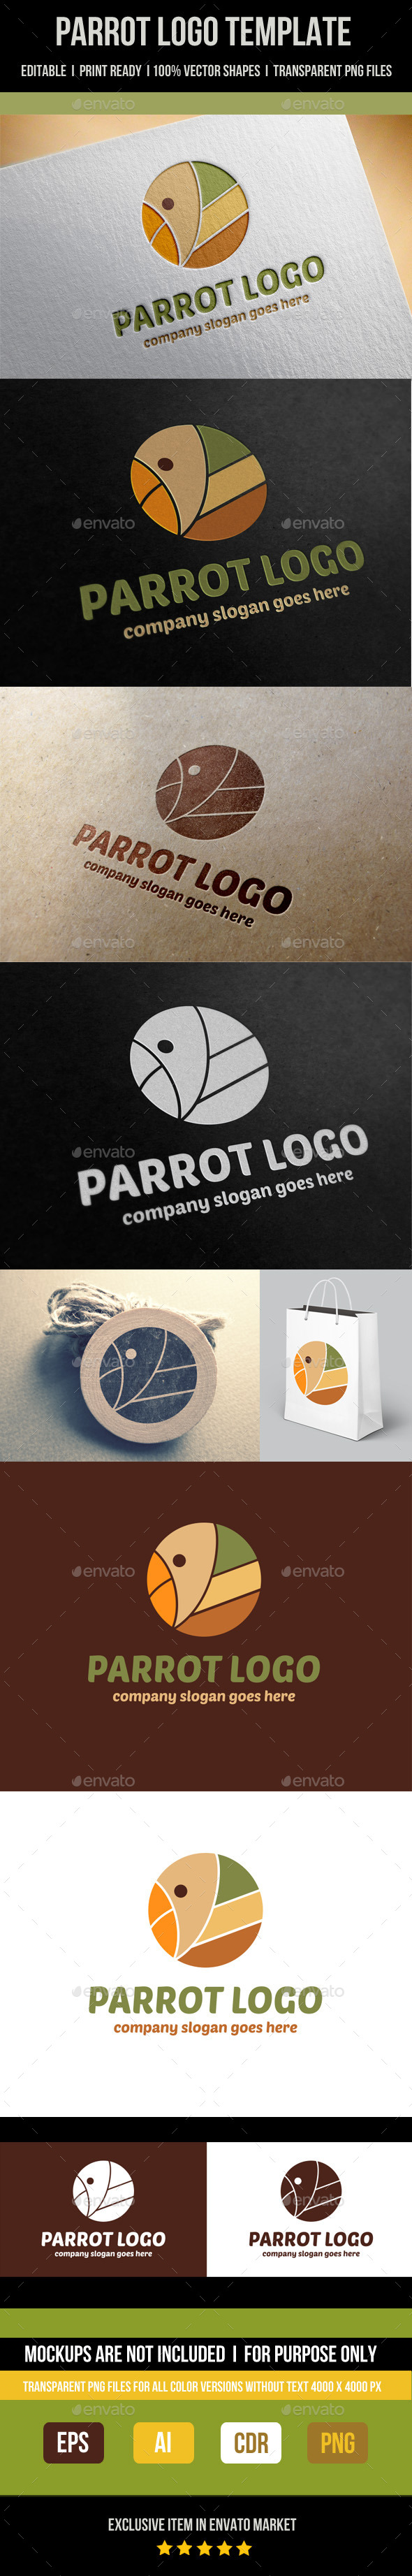 GraphicRiver Parrot Logo Template 9024516